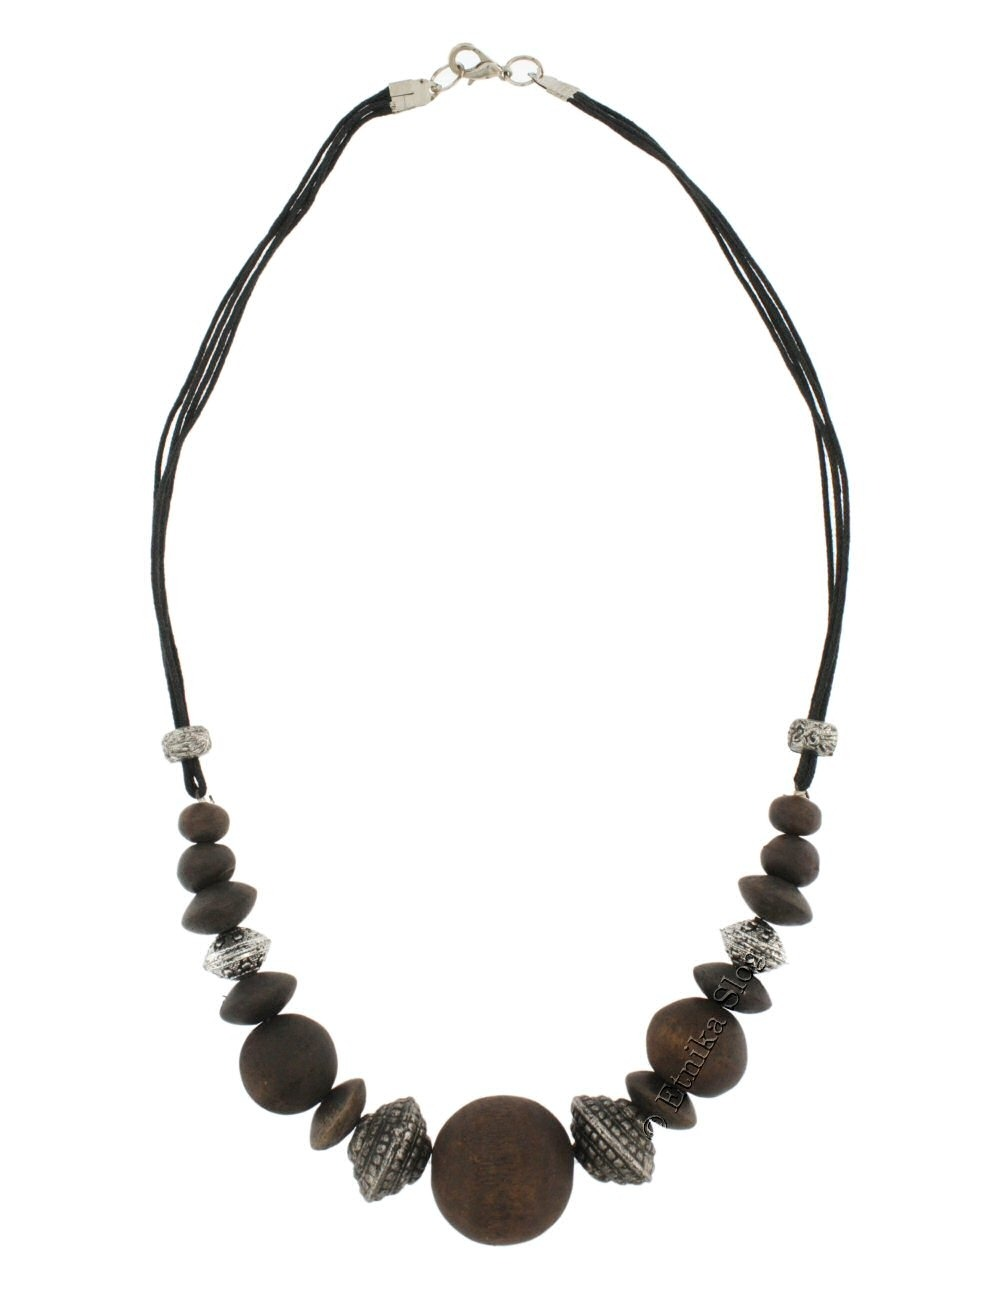 NECKLACE BG-IDCL006 - Oriente Import S.r.l.